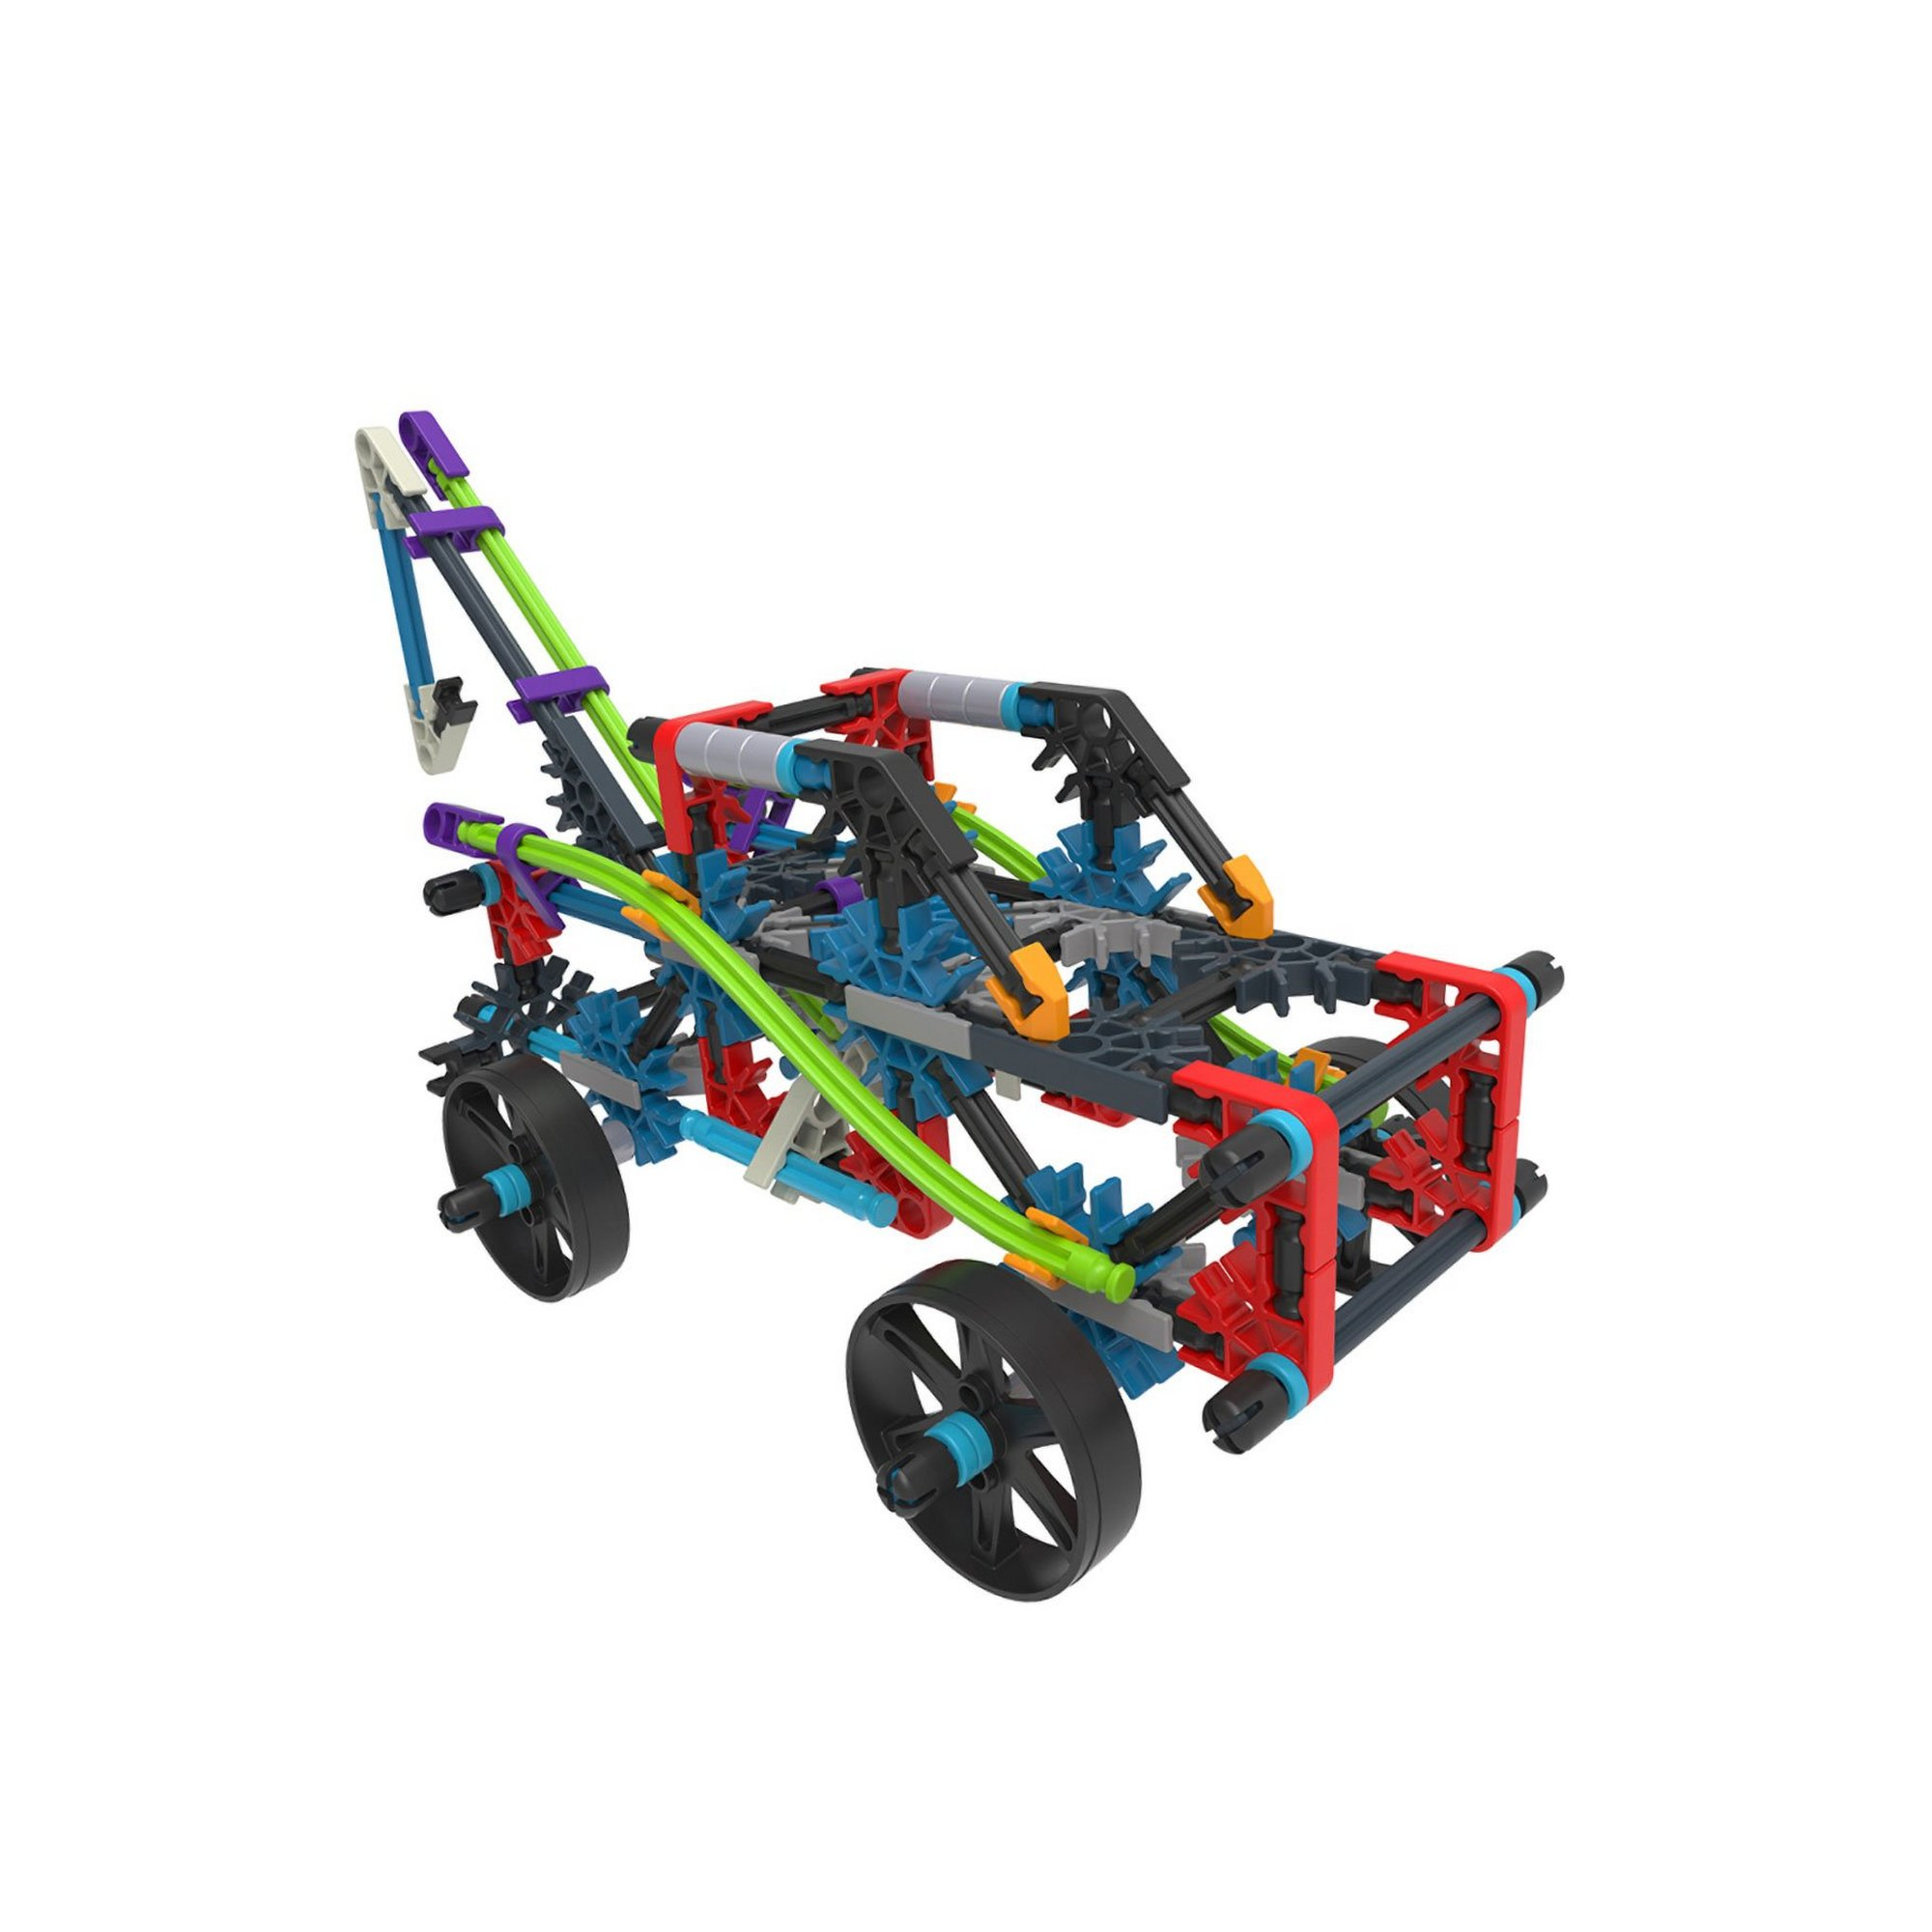 Image of KNex Rad Rides 12 in 1 Building Set